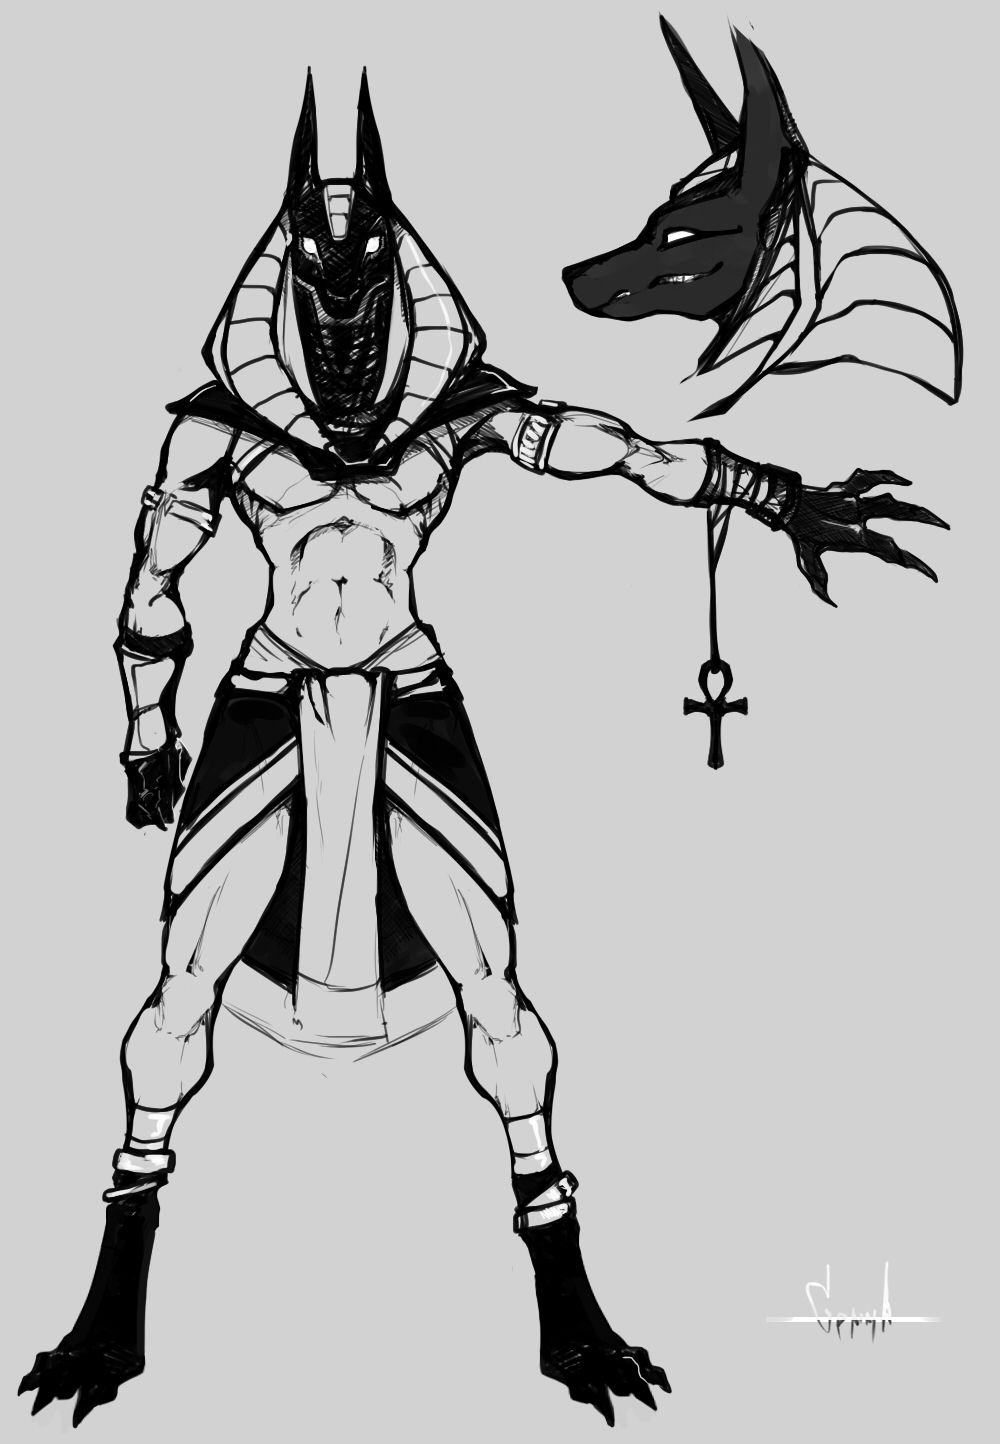 anubis egyptian god drawings i love anubis he is misunderstood as a god of darkness egyptian drawings god anubis